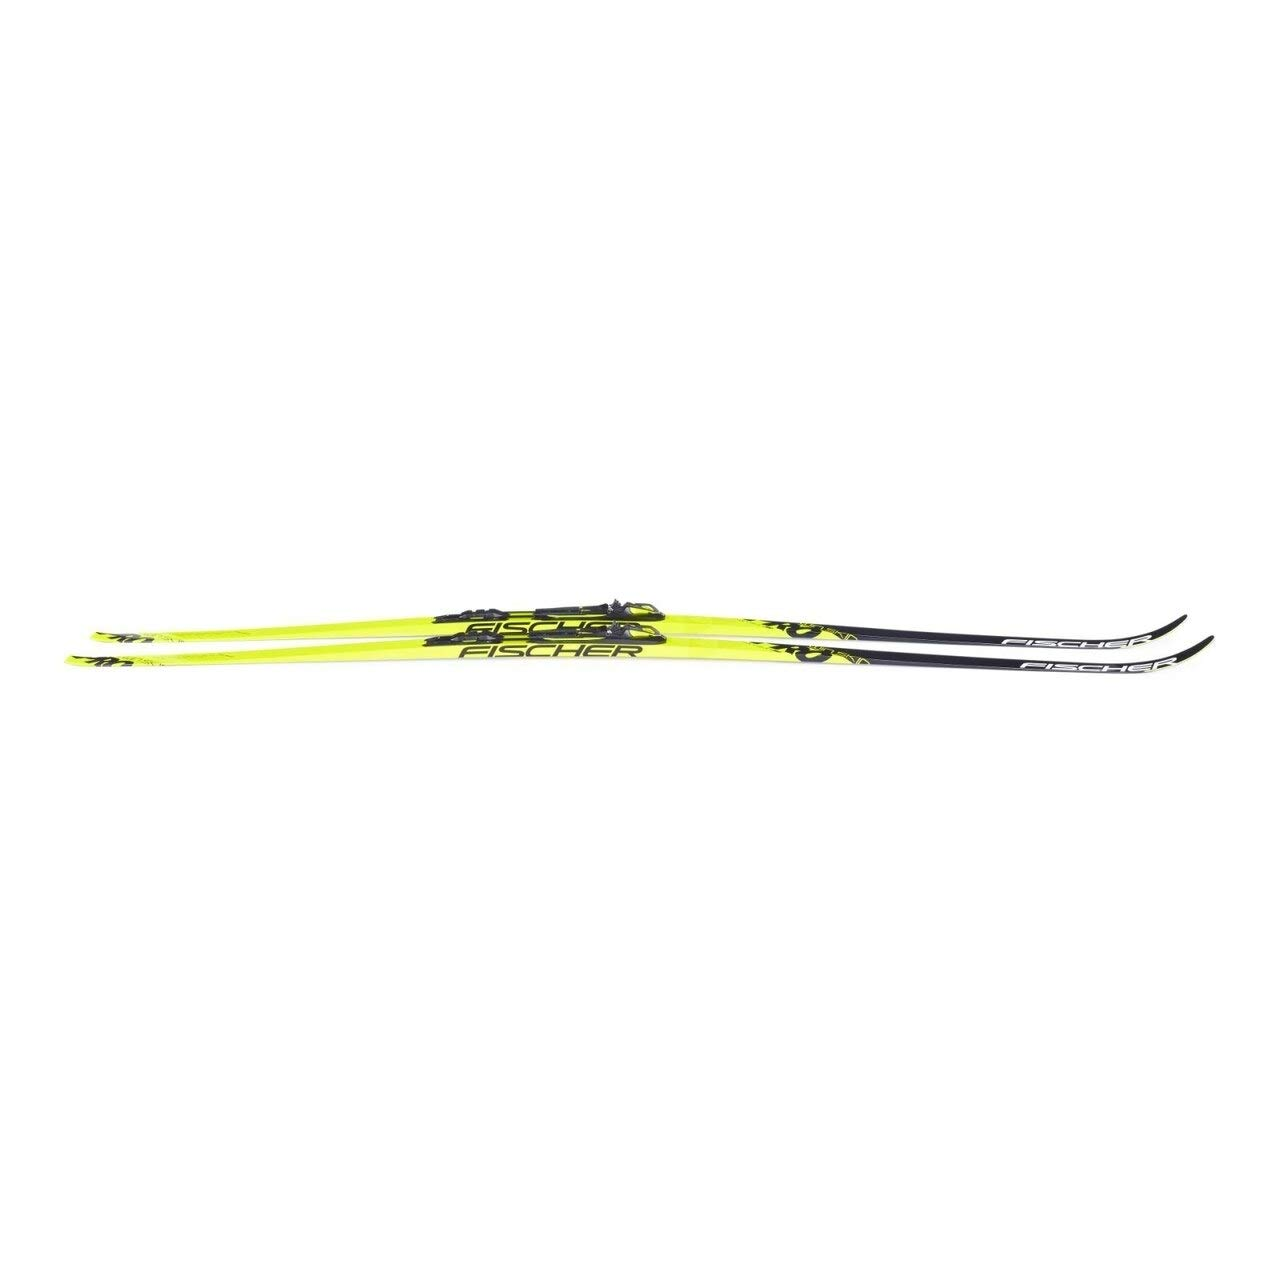 Fischer Twin Skin Pro Cross Country Skis - 202cm Stiff - One Color by Fischer